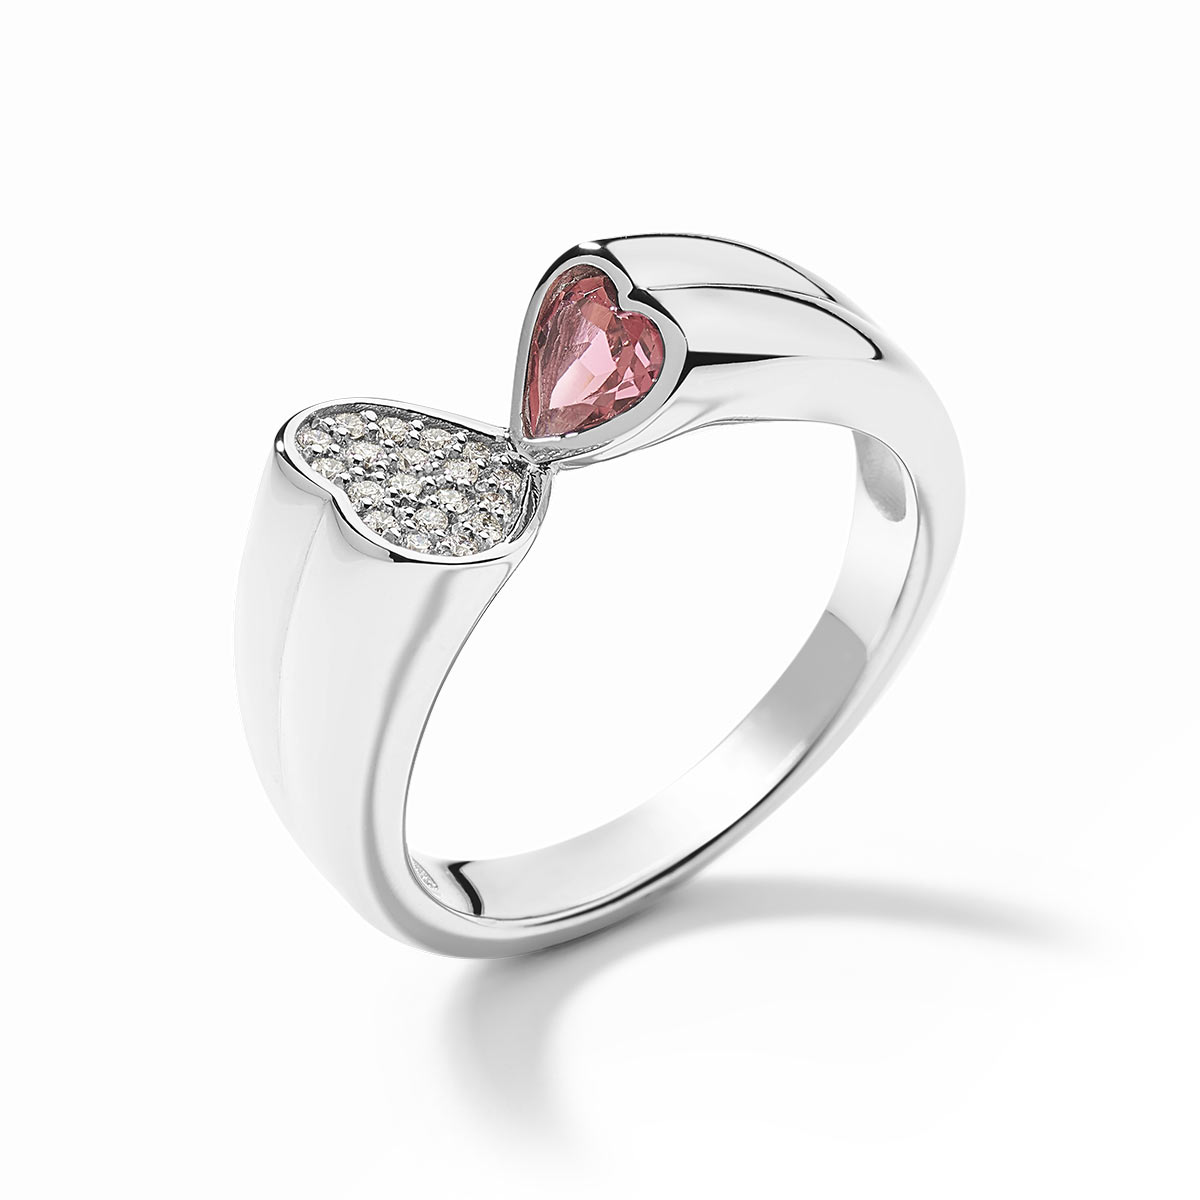 Bague or blanc 750 tourmaline rose diamants - vue 1